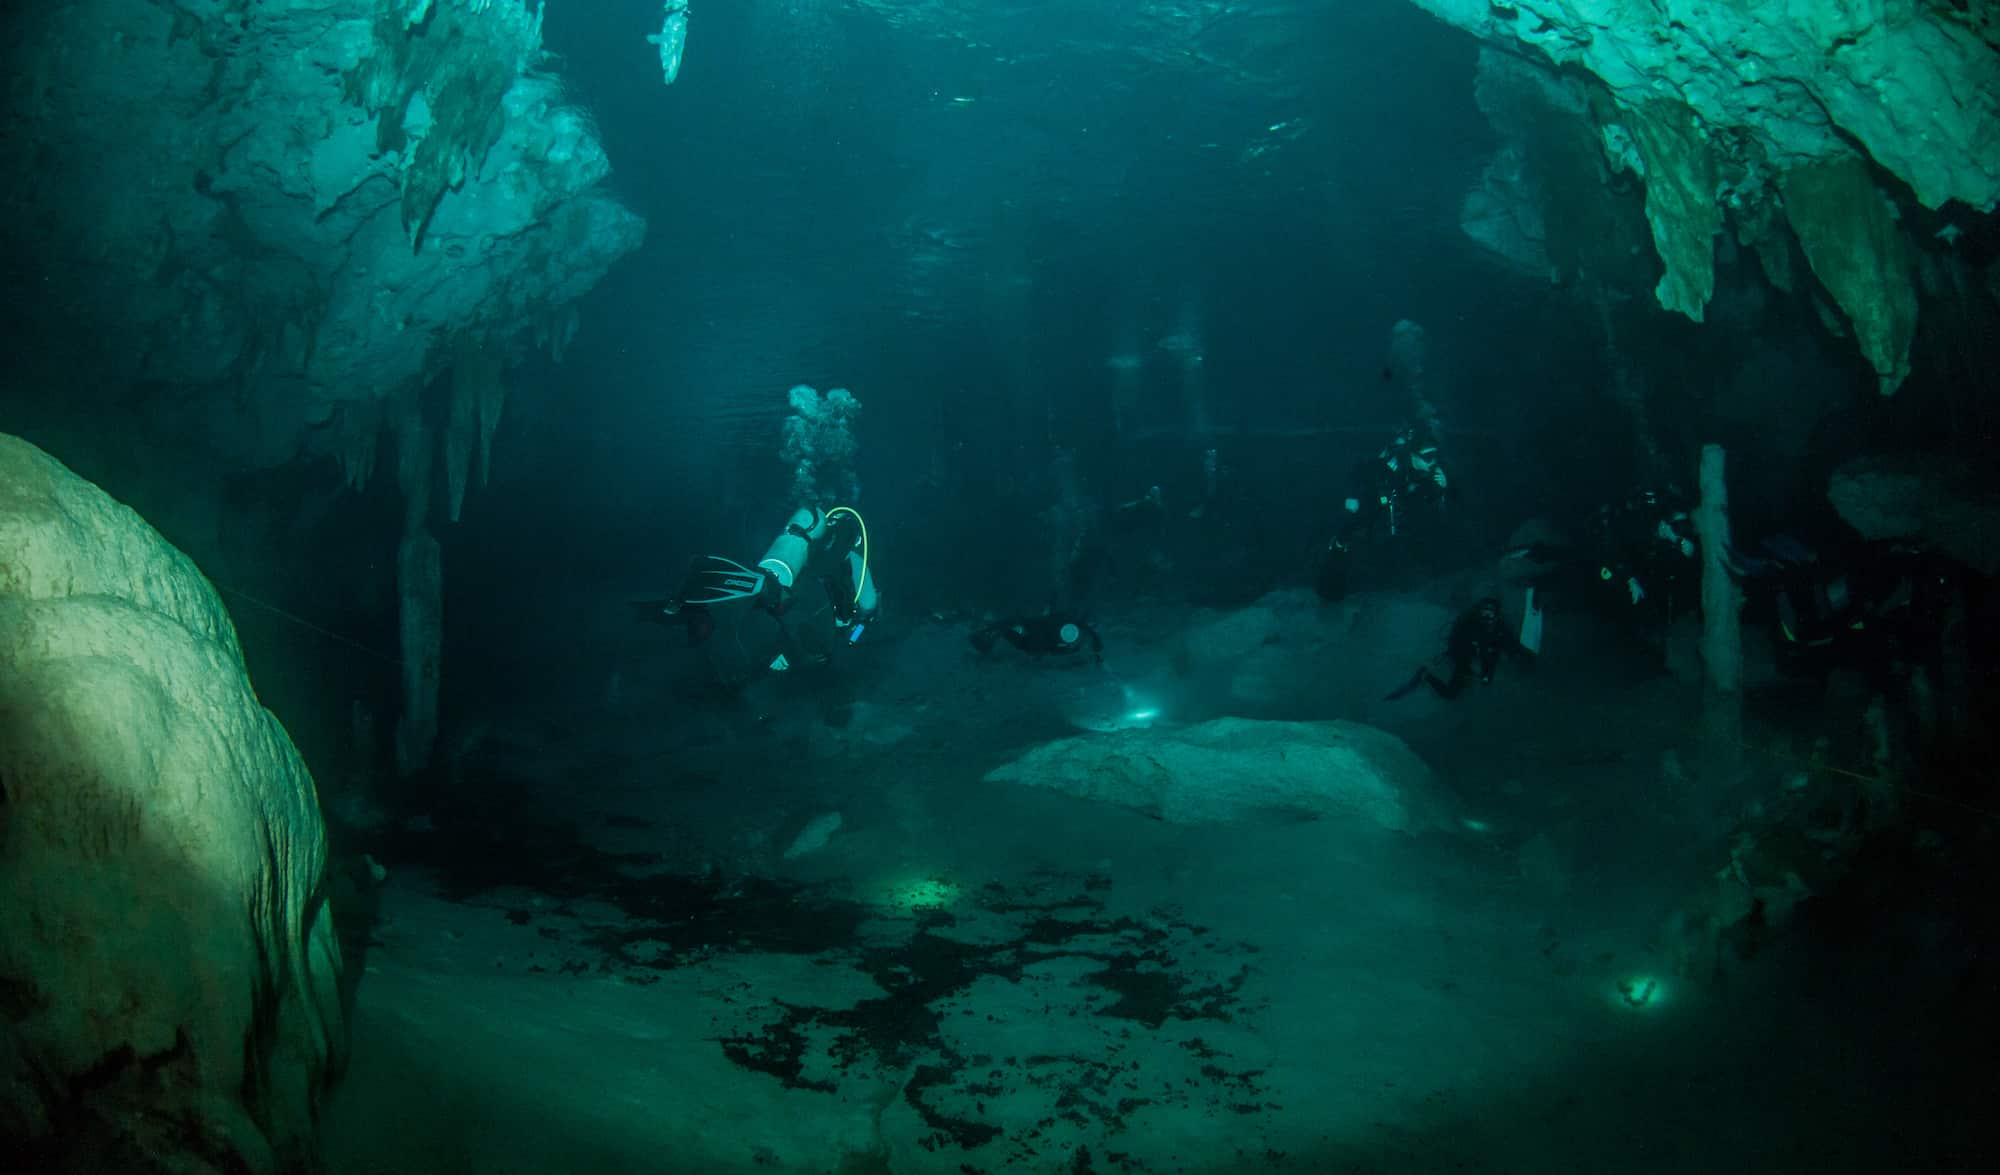 The Best Cave Diving Sites And Beginner Tips For Cave Diving - Scuba diving in Cenote Dos Ojos in Mexico 2